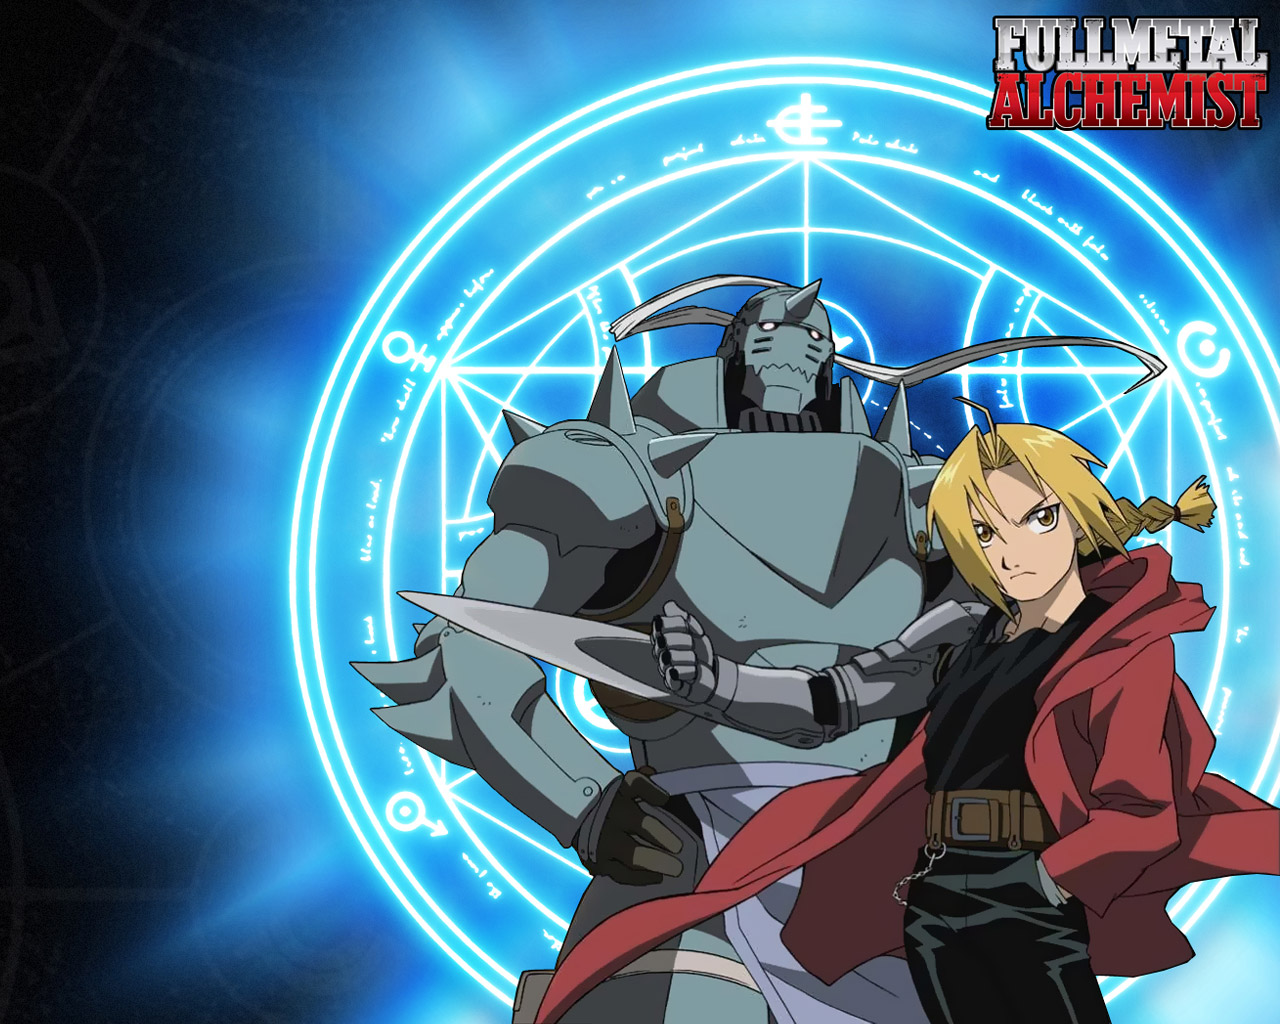 Full Metal Alchemist HD & Widescreen Wallpaper 0.194458116972028